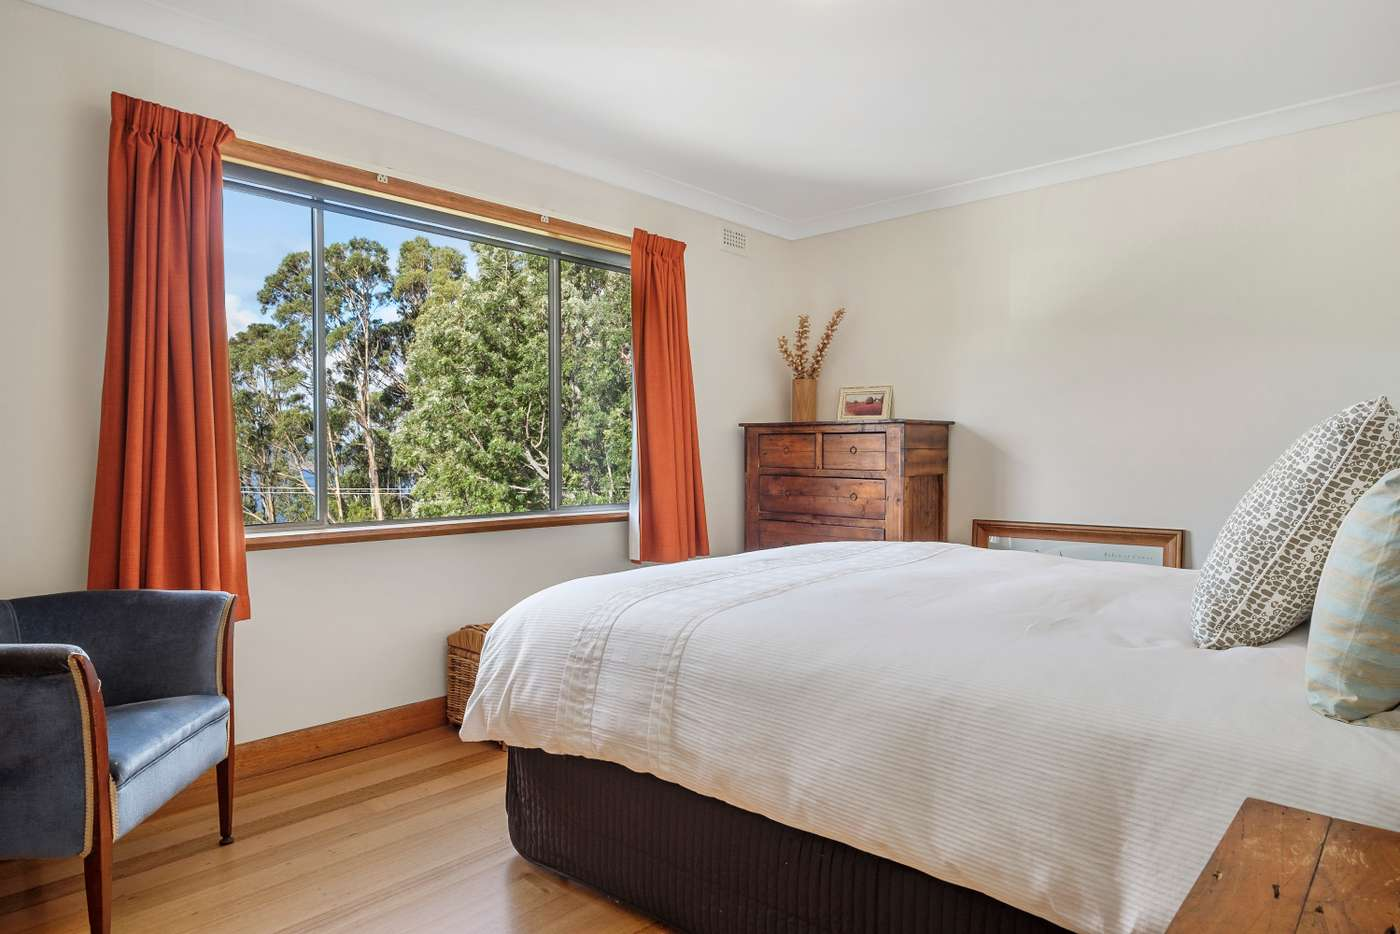 Sixth view of Homely house listing, 3264 Channel Highway, Woodbridge TAS 7162